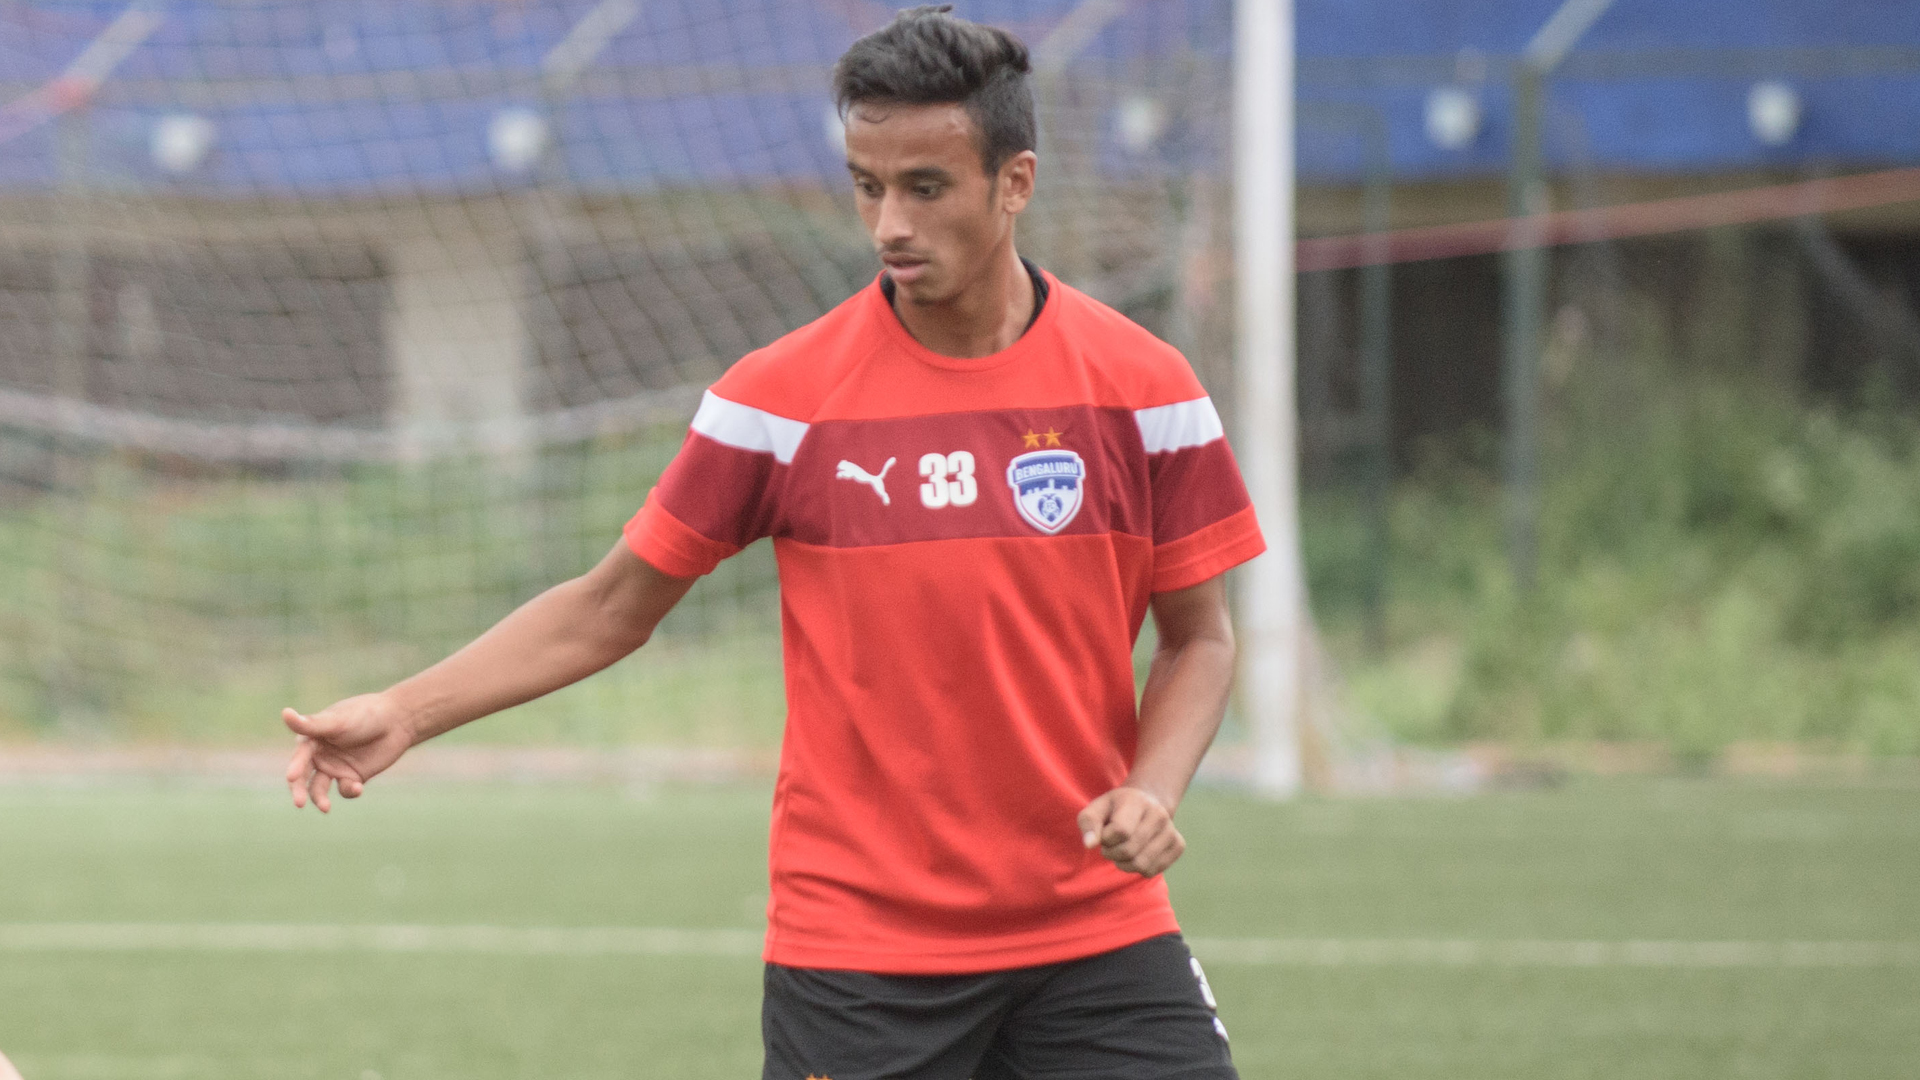 Gursimrat Singh Bengaluru FC training session